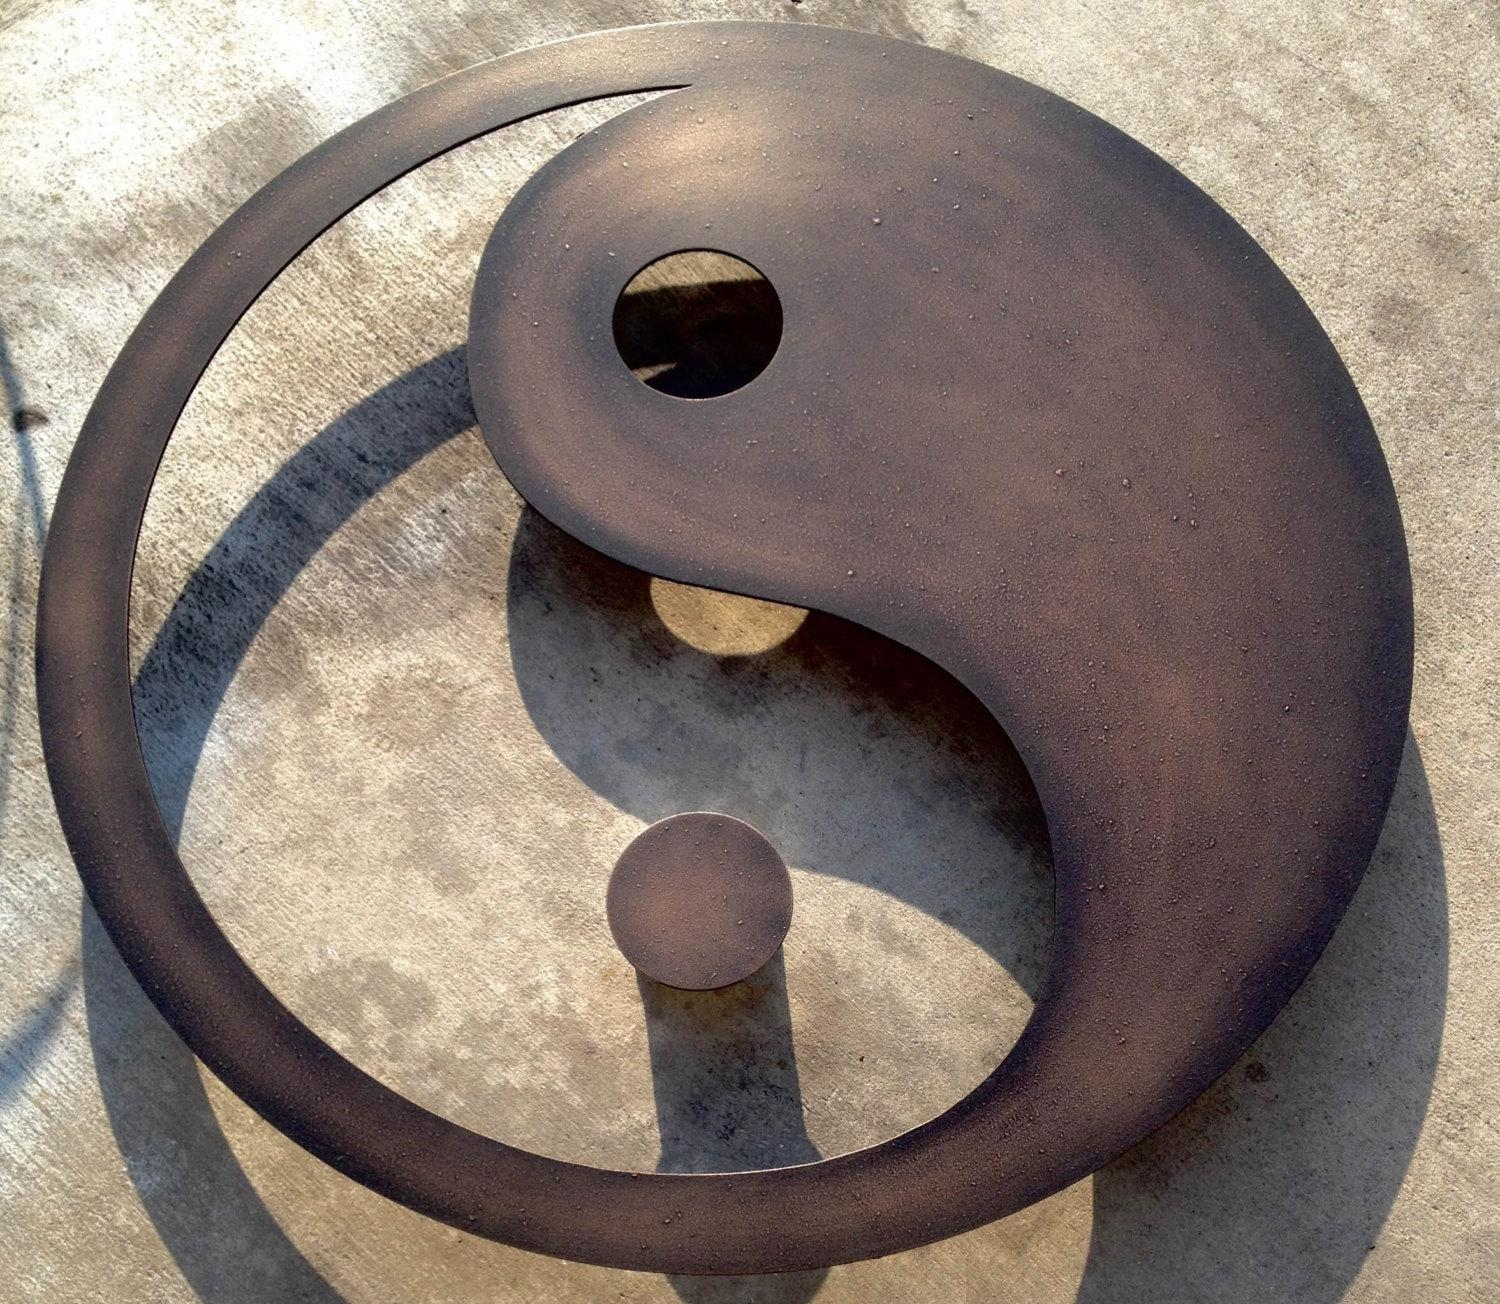 Metal Wall Art For The Home Or Officeinspiremetals On Etsy Throughout Yin Yang Wall Art (View 17 of 20)